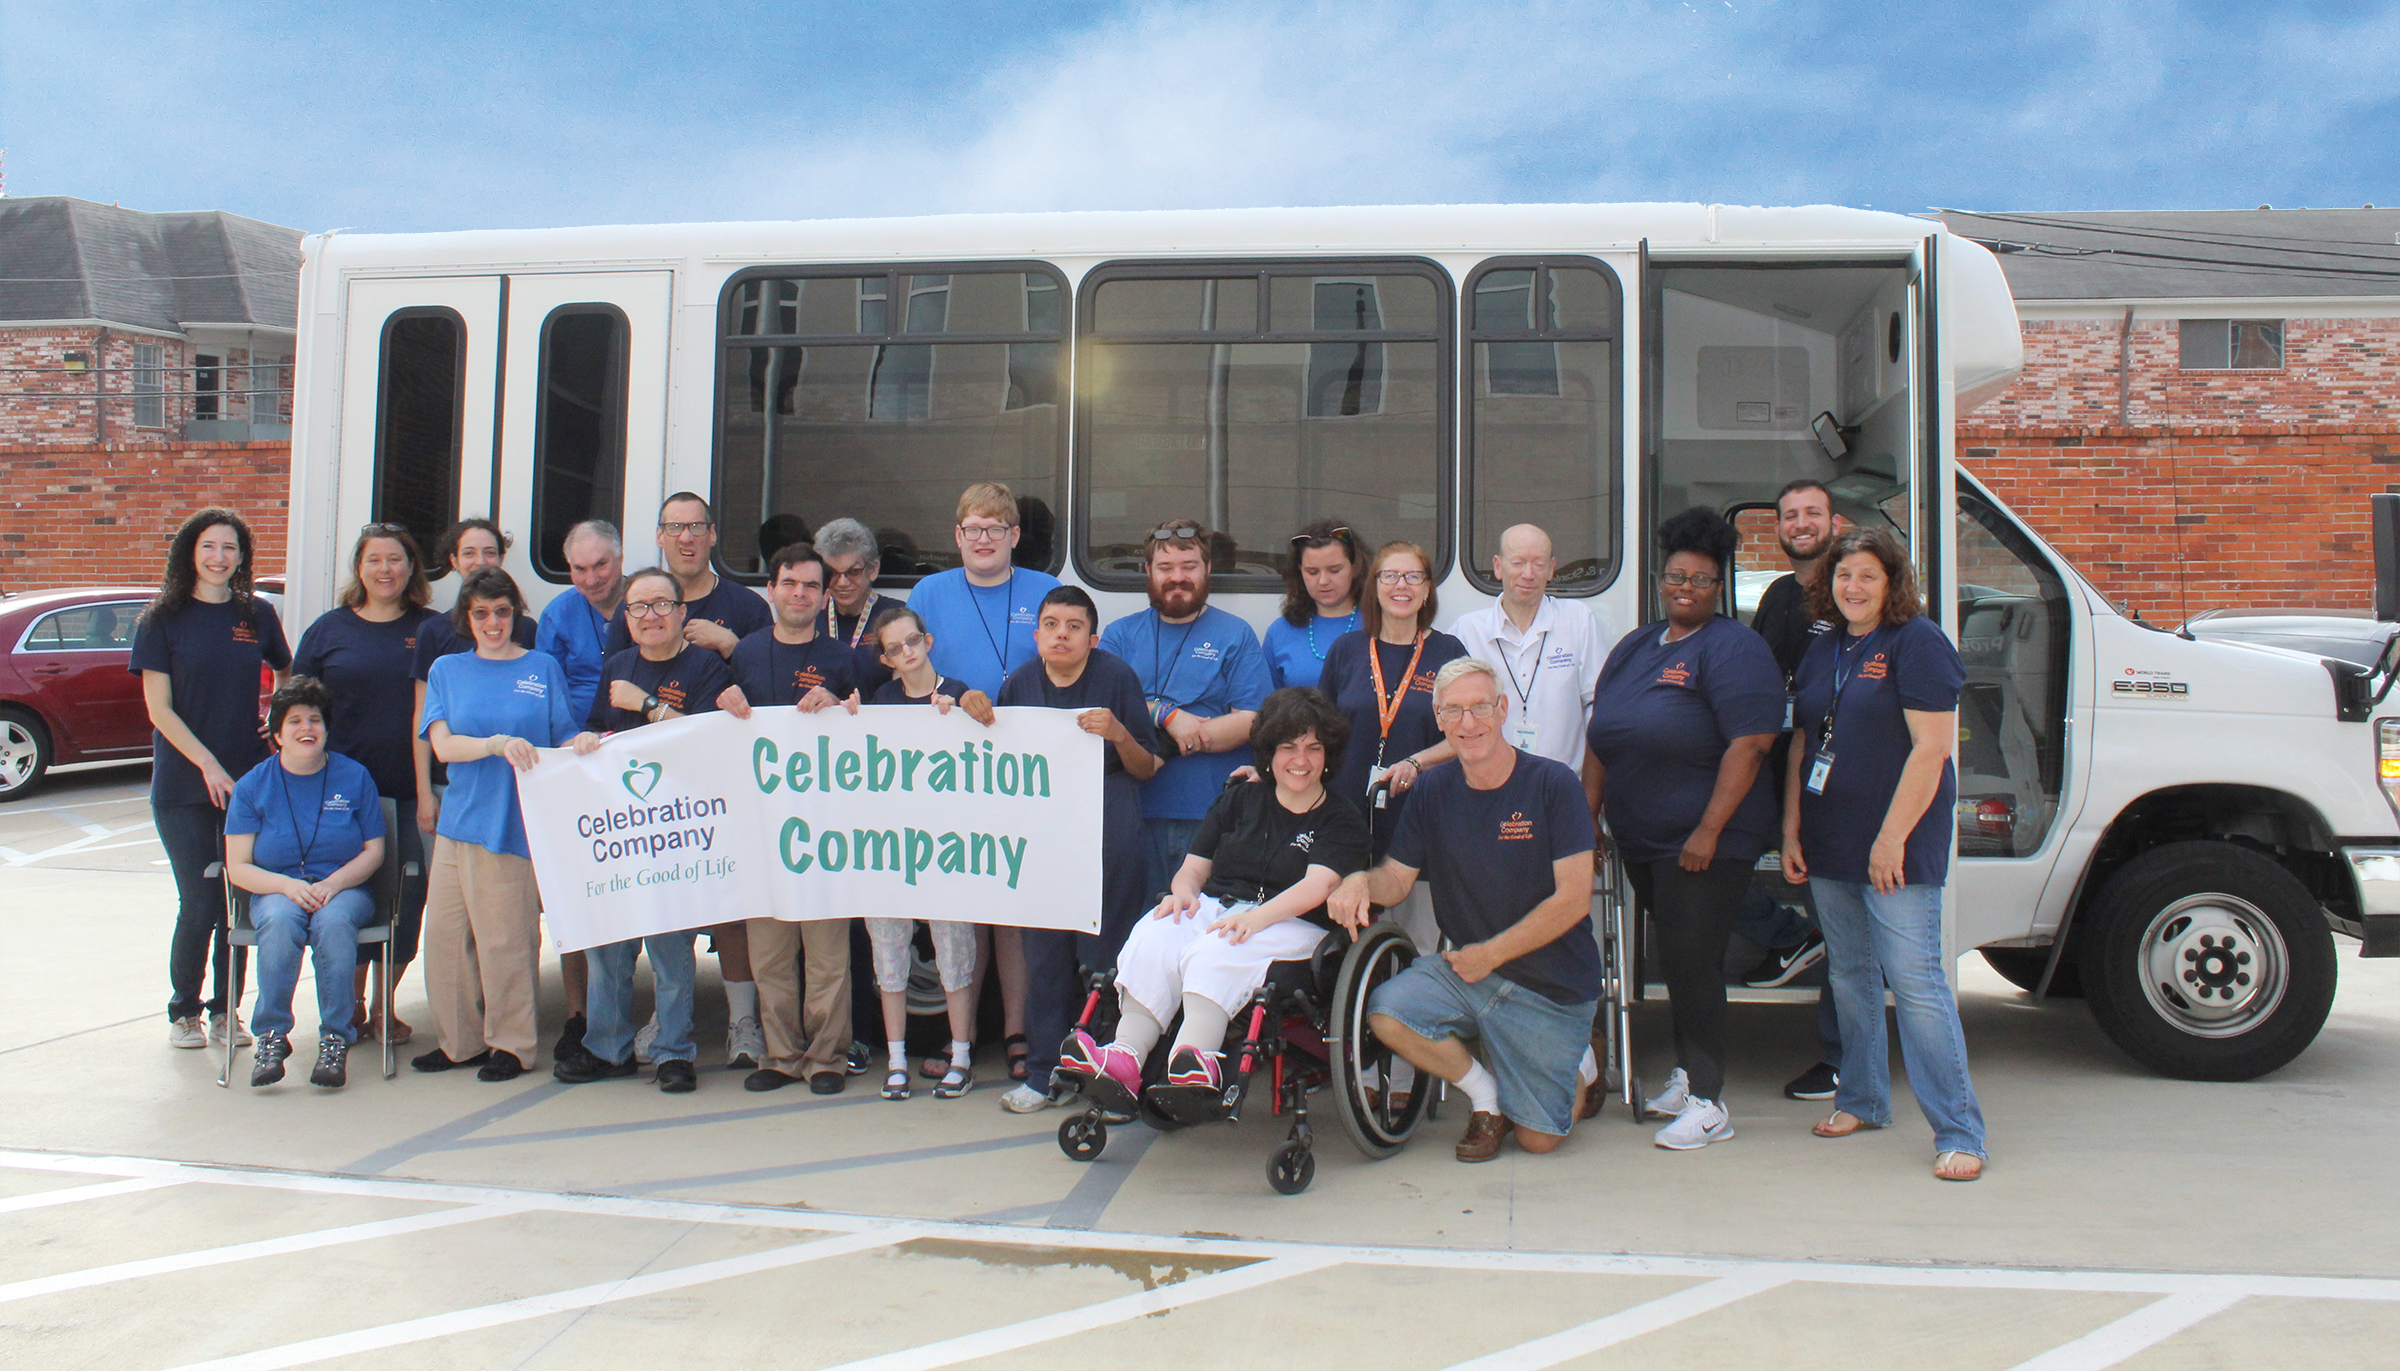 Celebration Company employees and staff pose in front of their bus